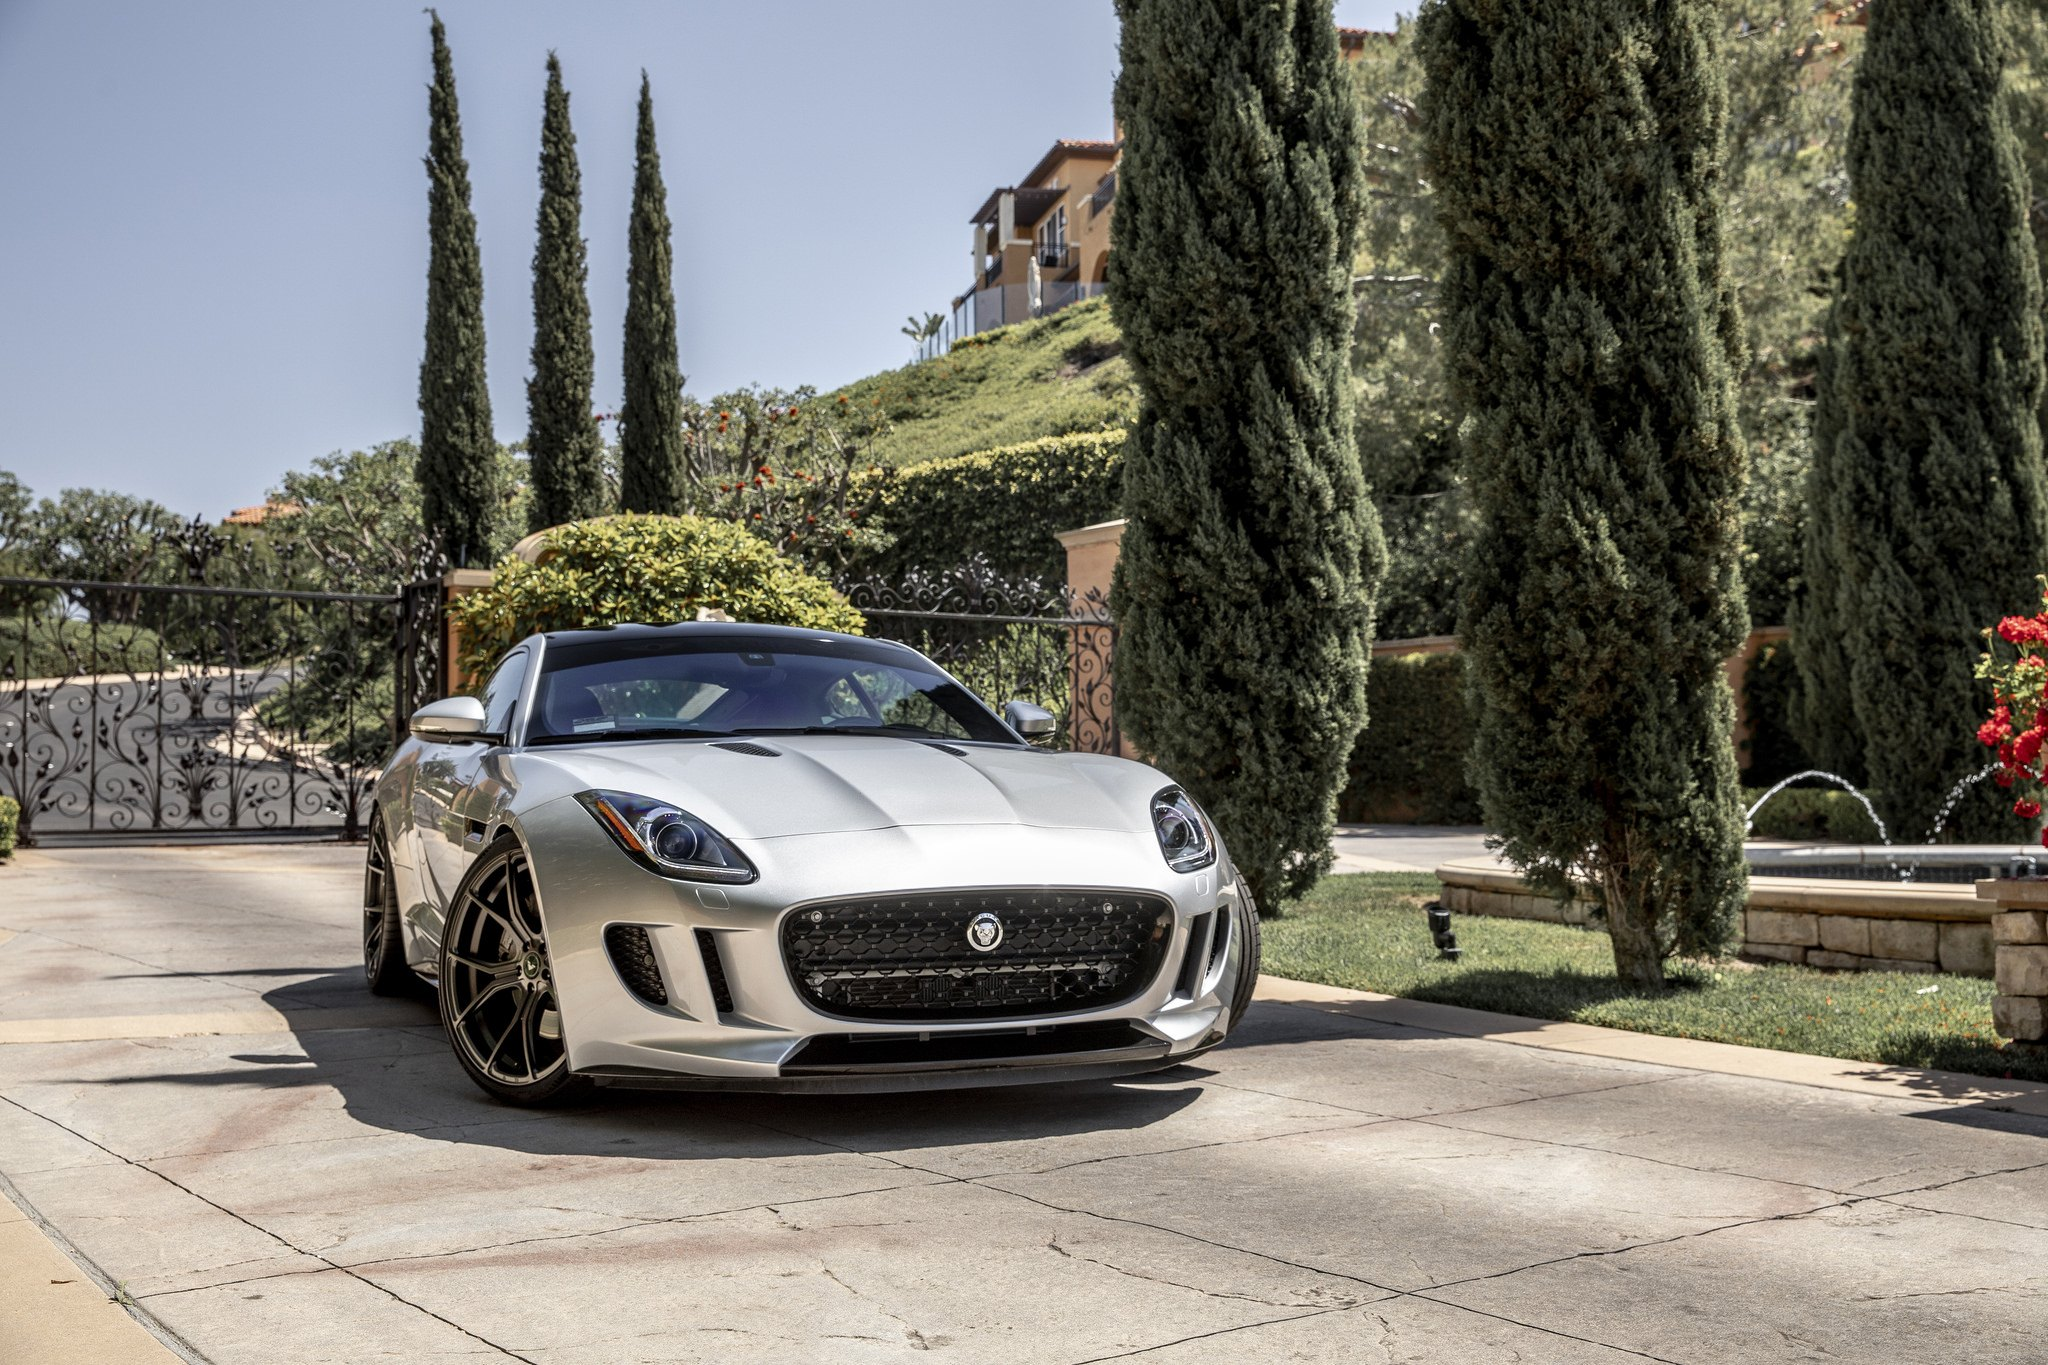 Silver Jaguar F Type Highlighted By Distinctive Aftermarket Body